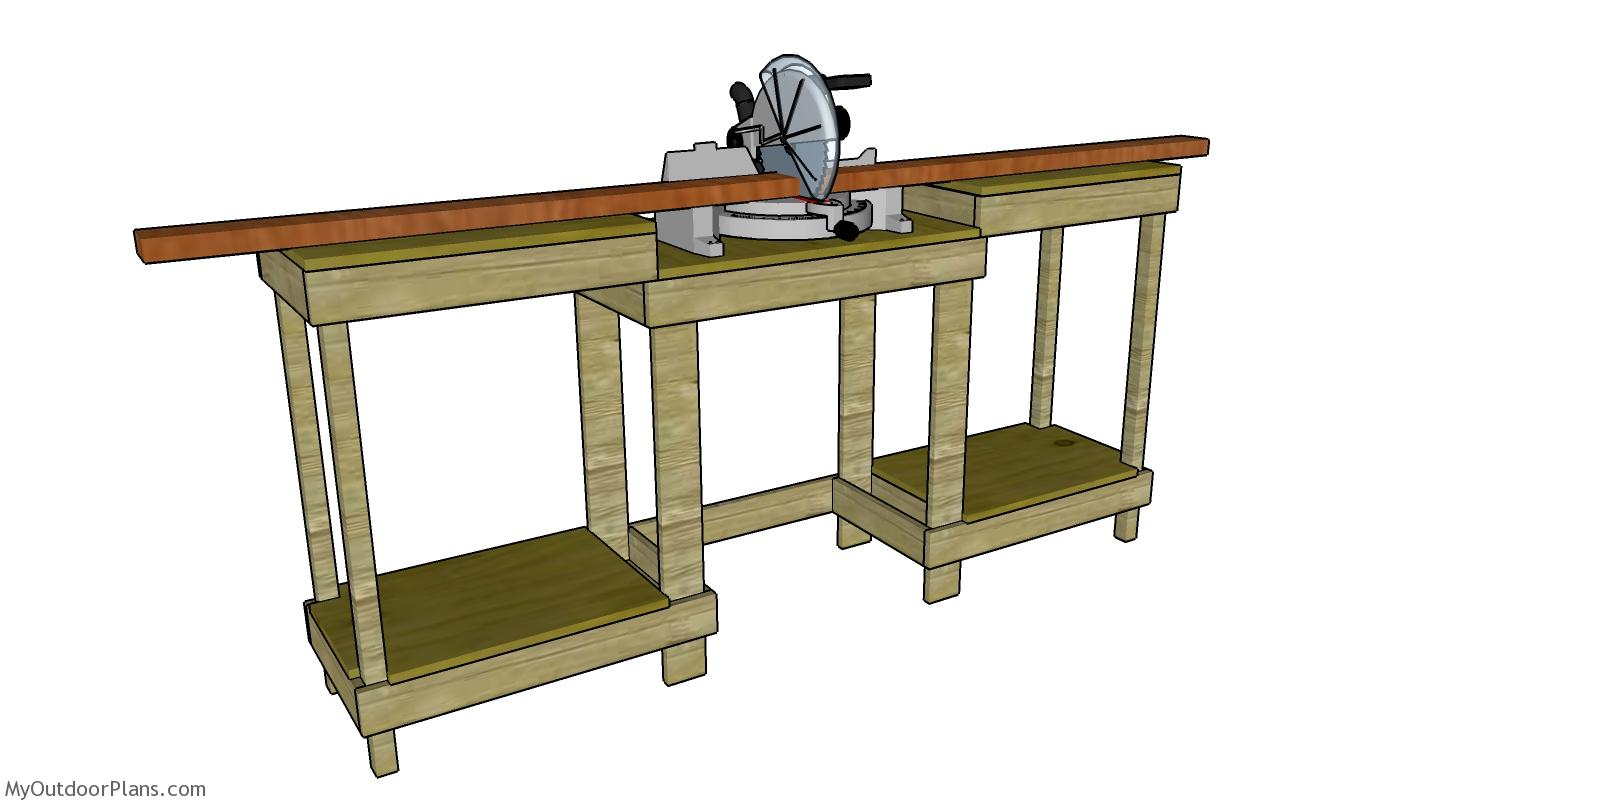 Simple Miter Saw Station - Free DIY Plans